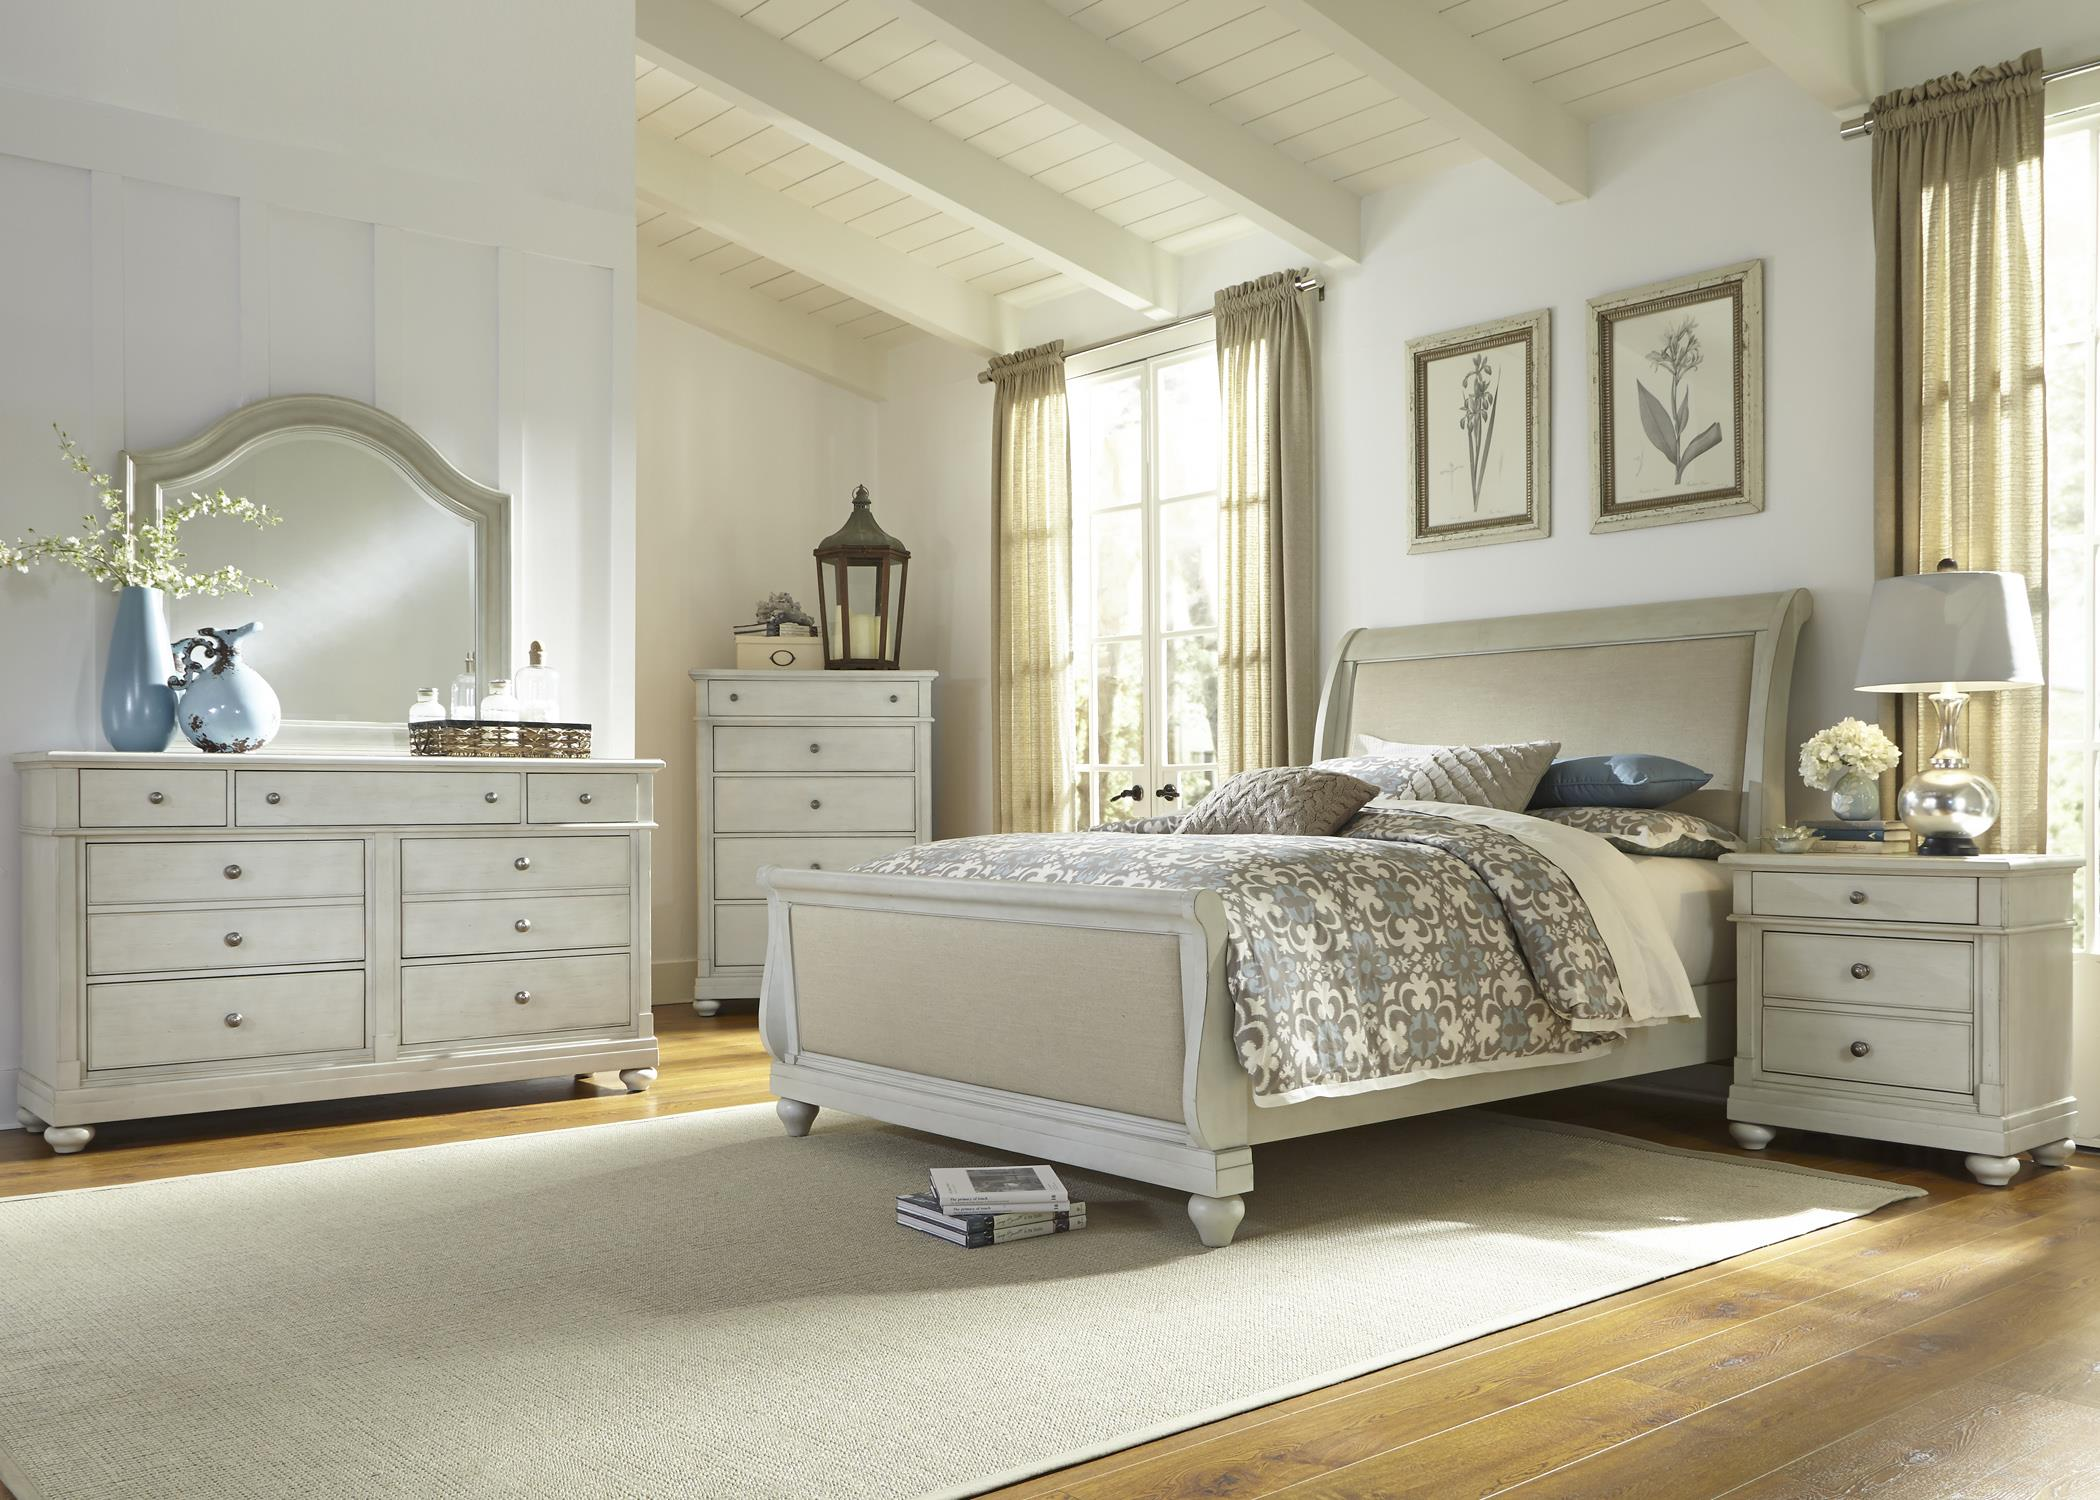 Liberty Furniture Harbor View King Bedroom Group - Item Number: 731-BR-KSLDMCN